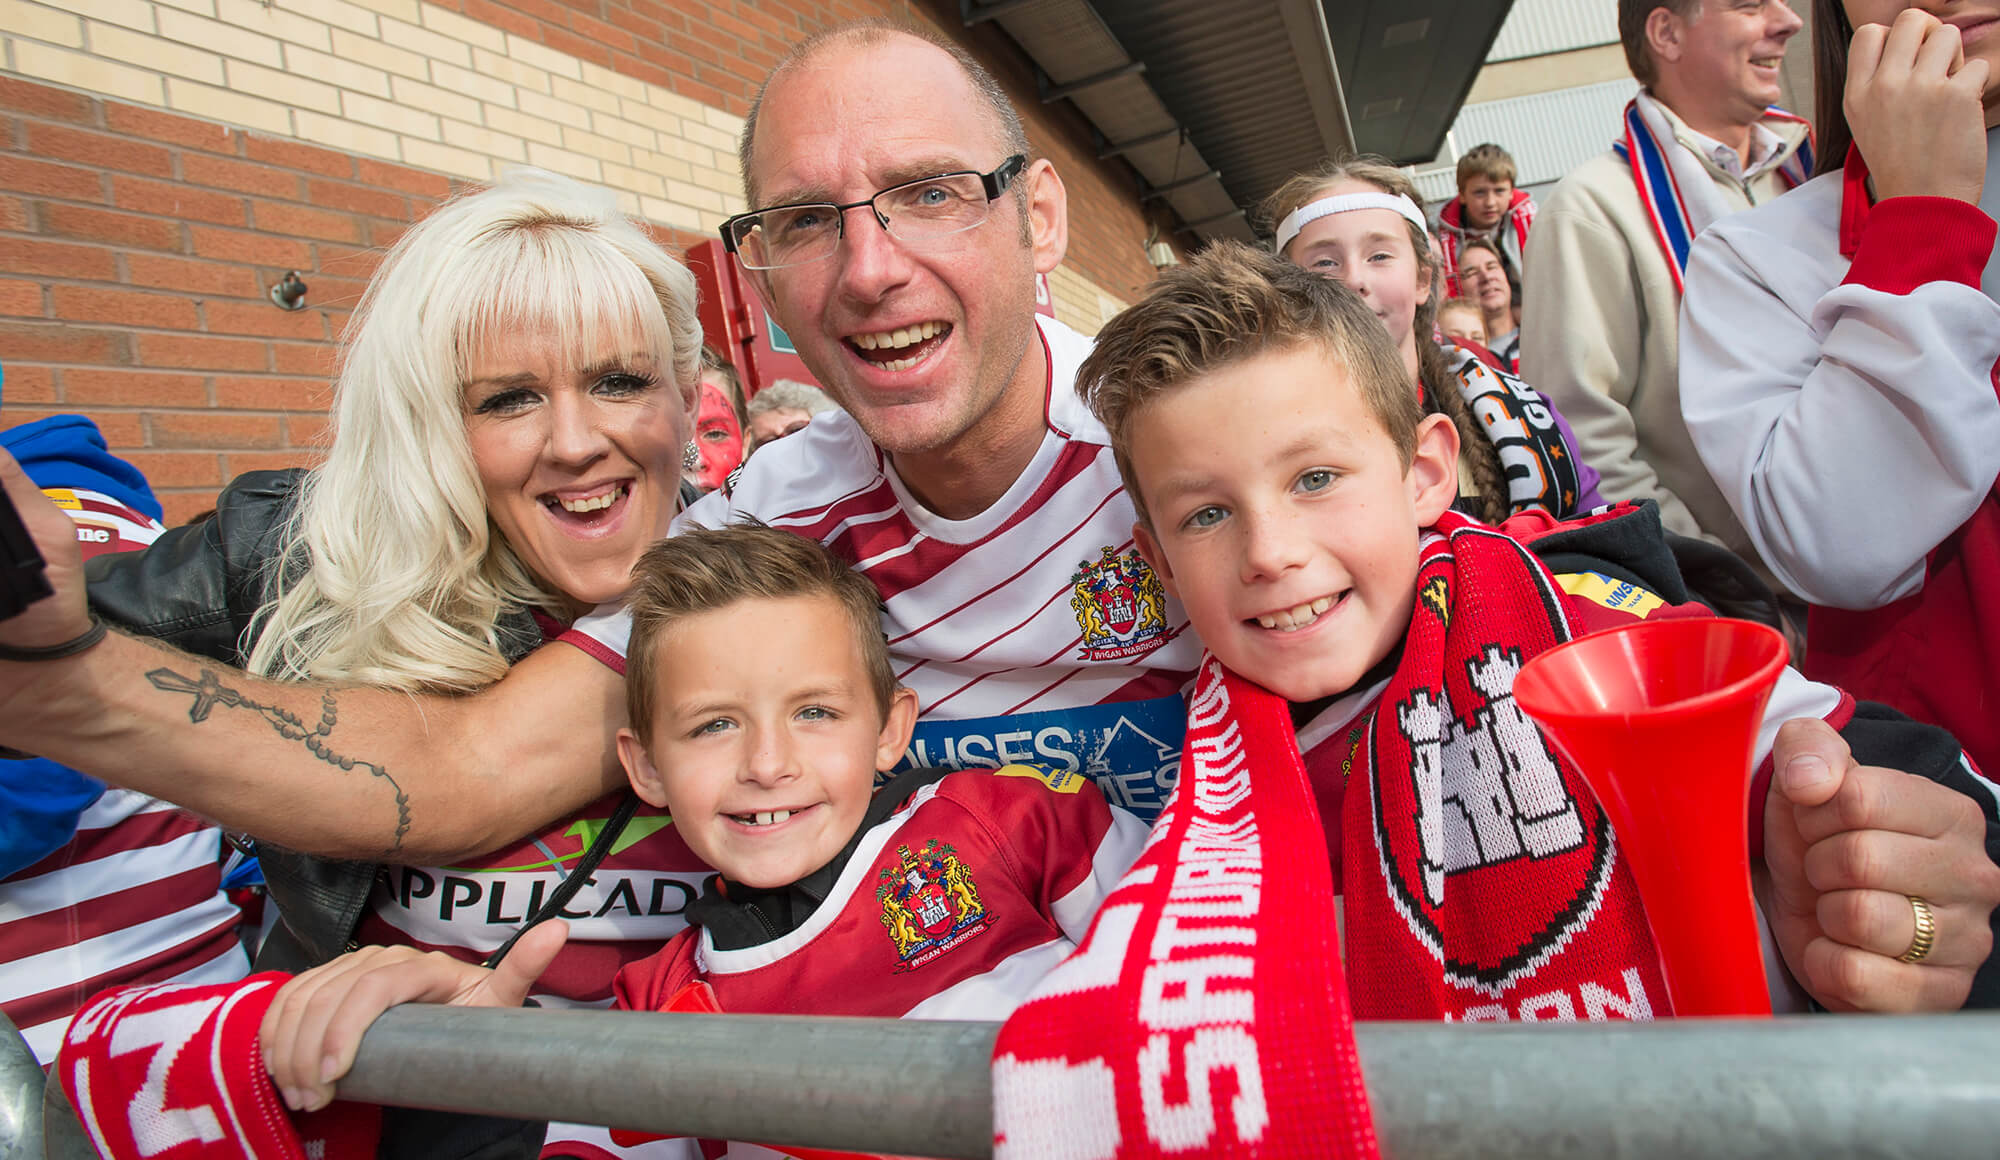 Family Ticket Proves Popular